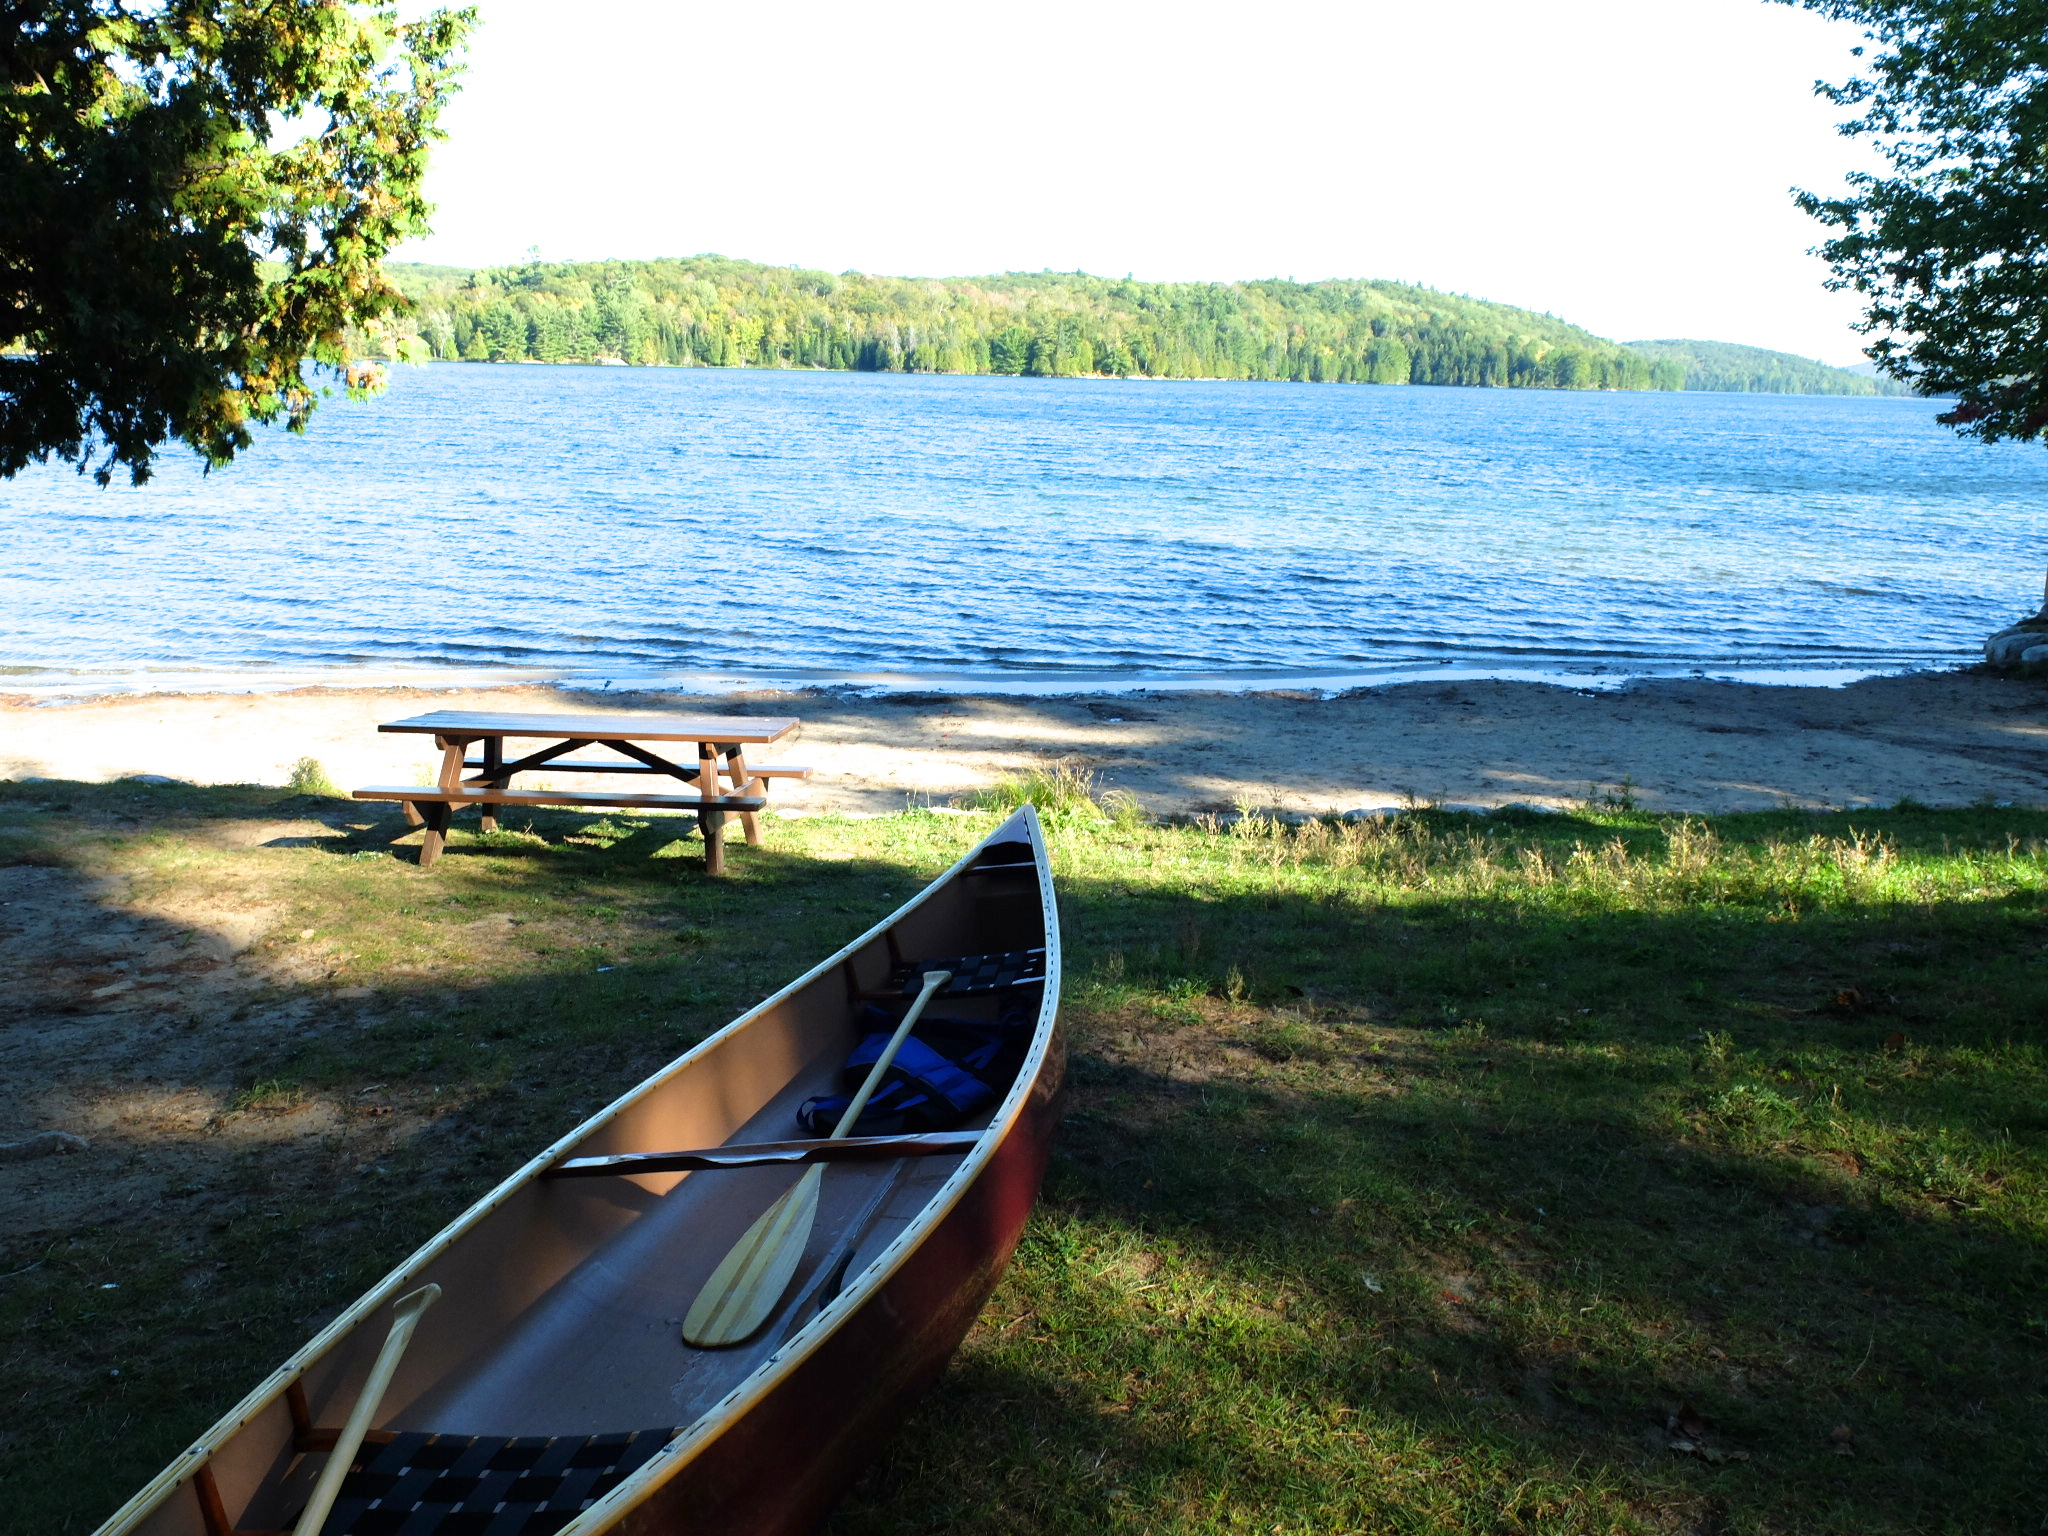 Summer at Lac Philippe - forests, beaches, lakeside ...